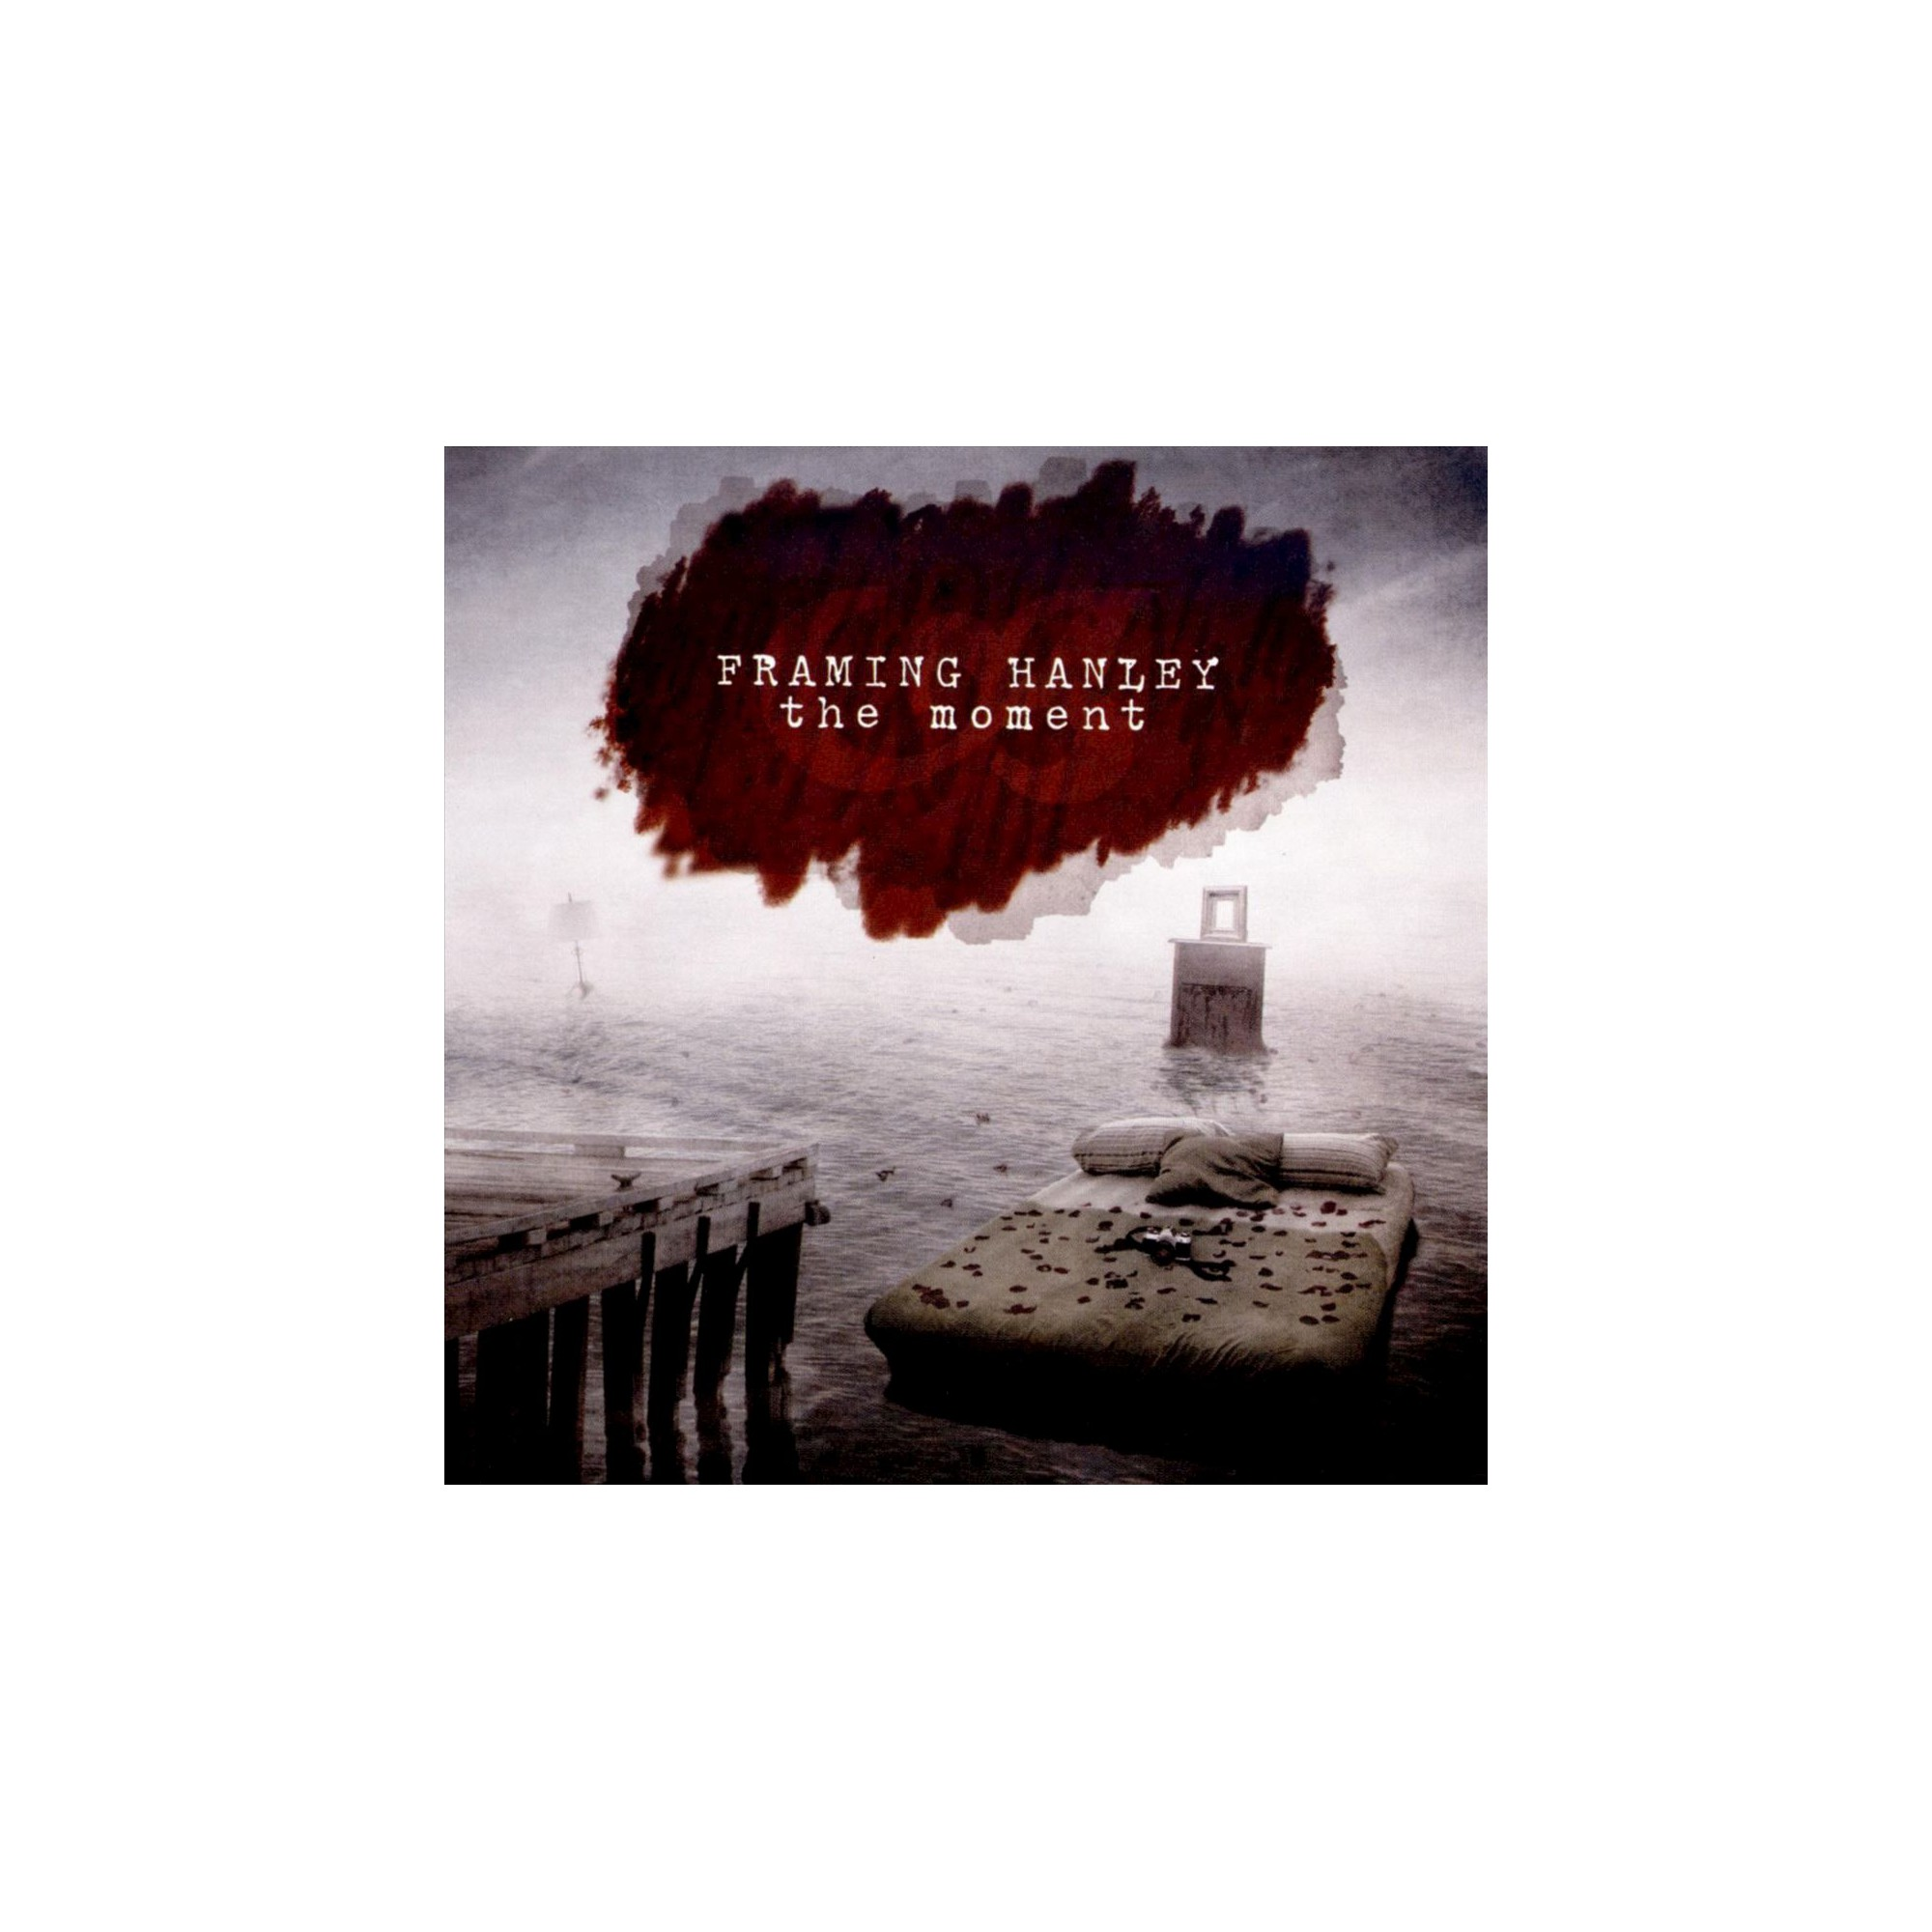 Framing Hanley - The Moment (Deluxe Edition) (CD) | Products